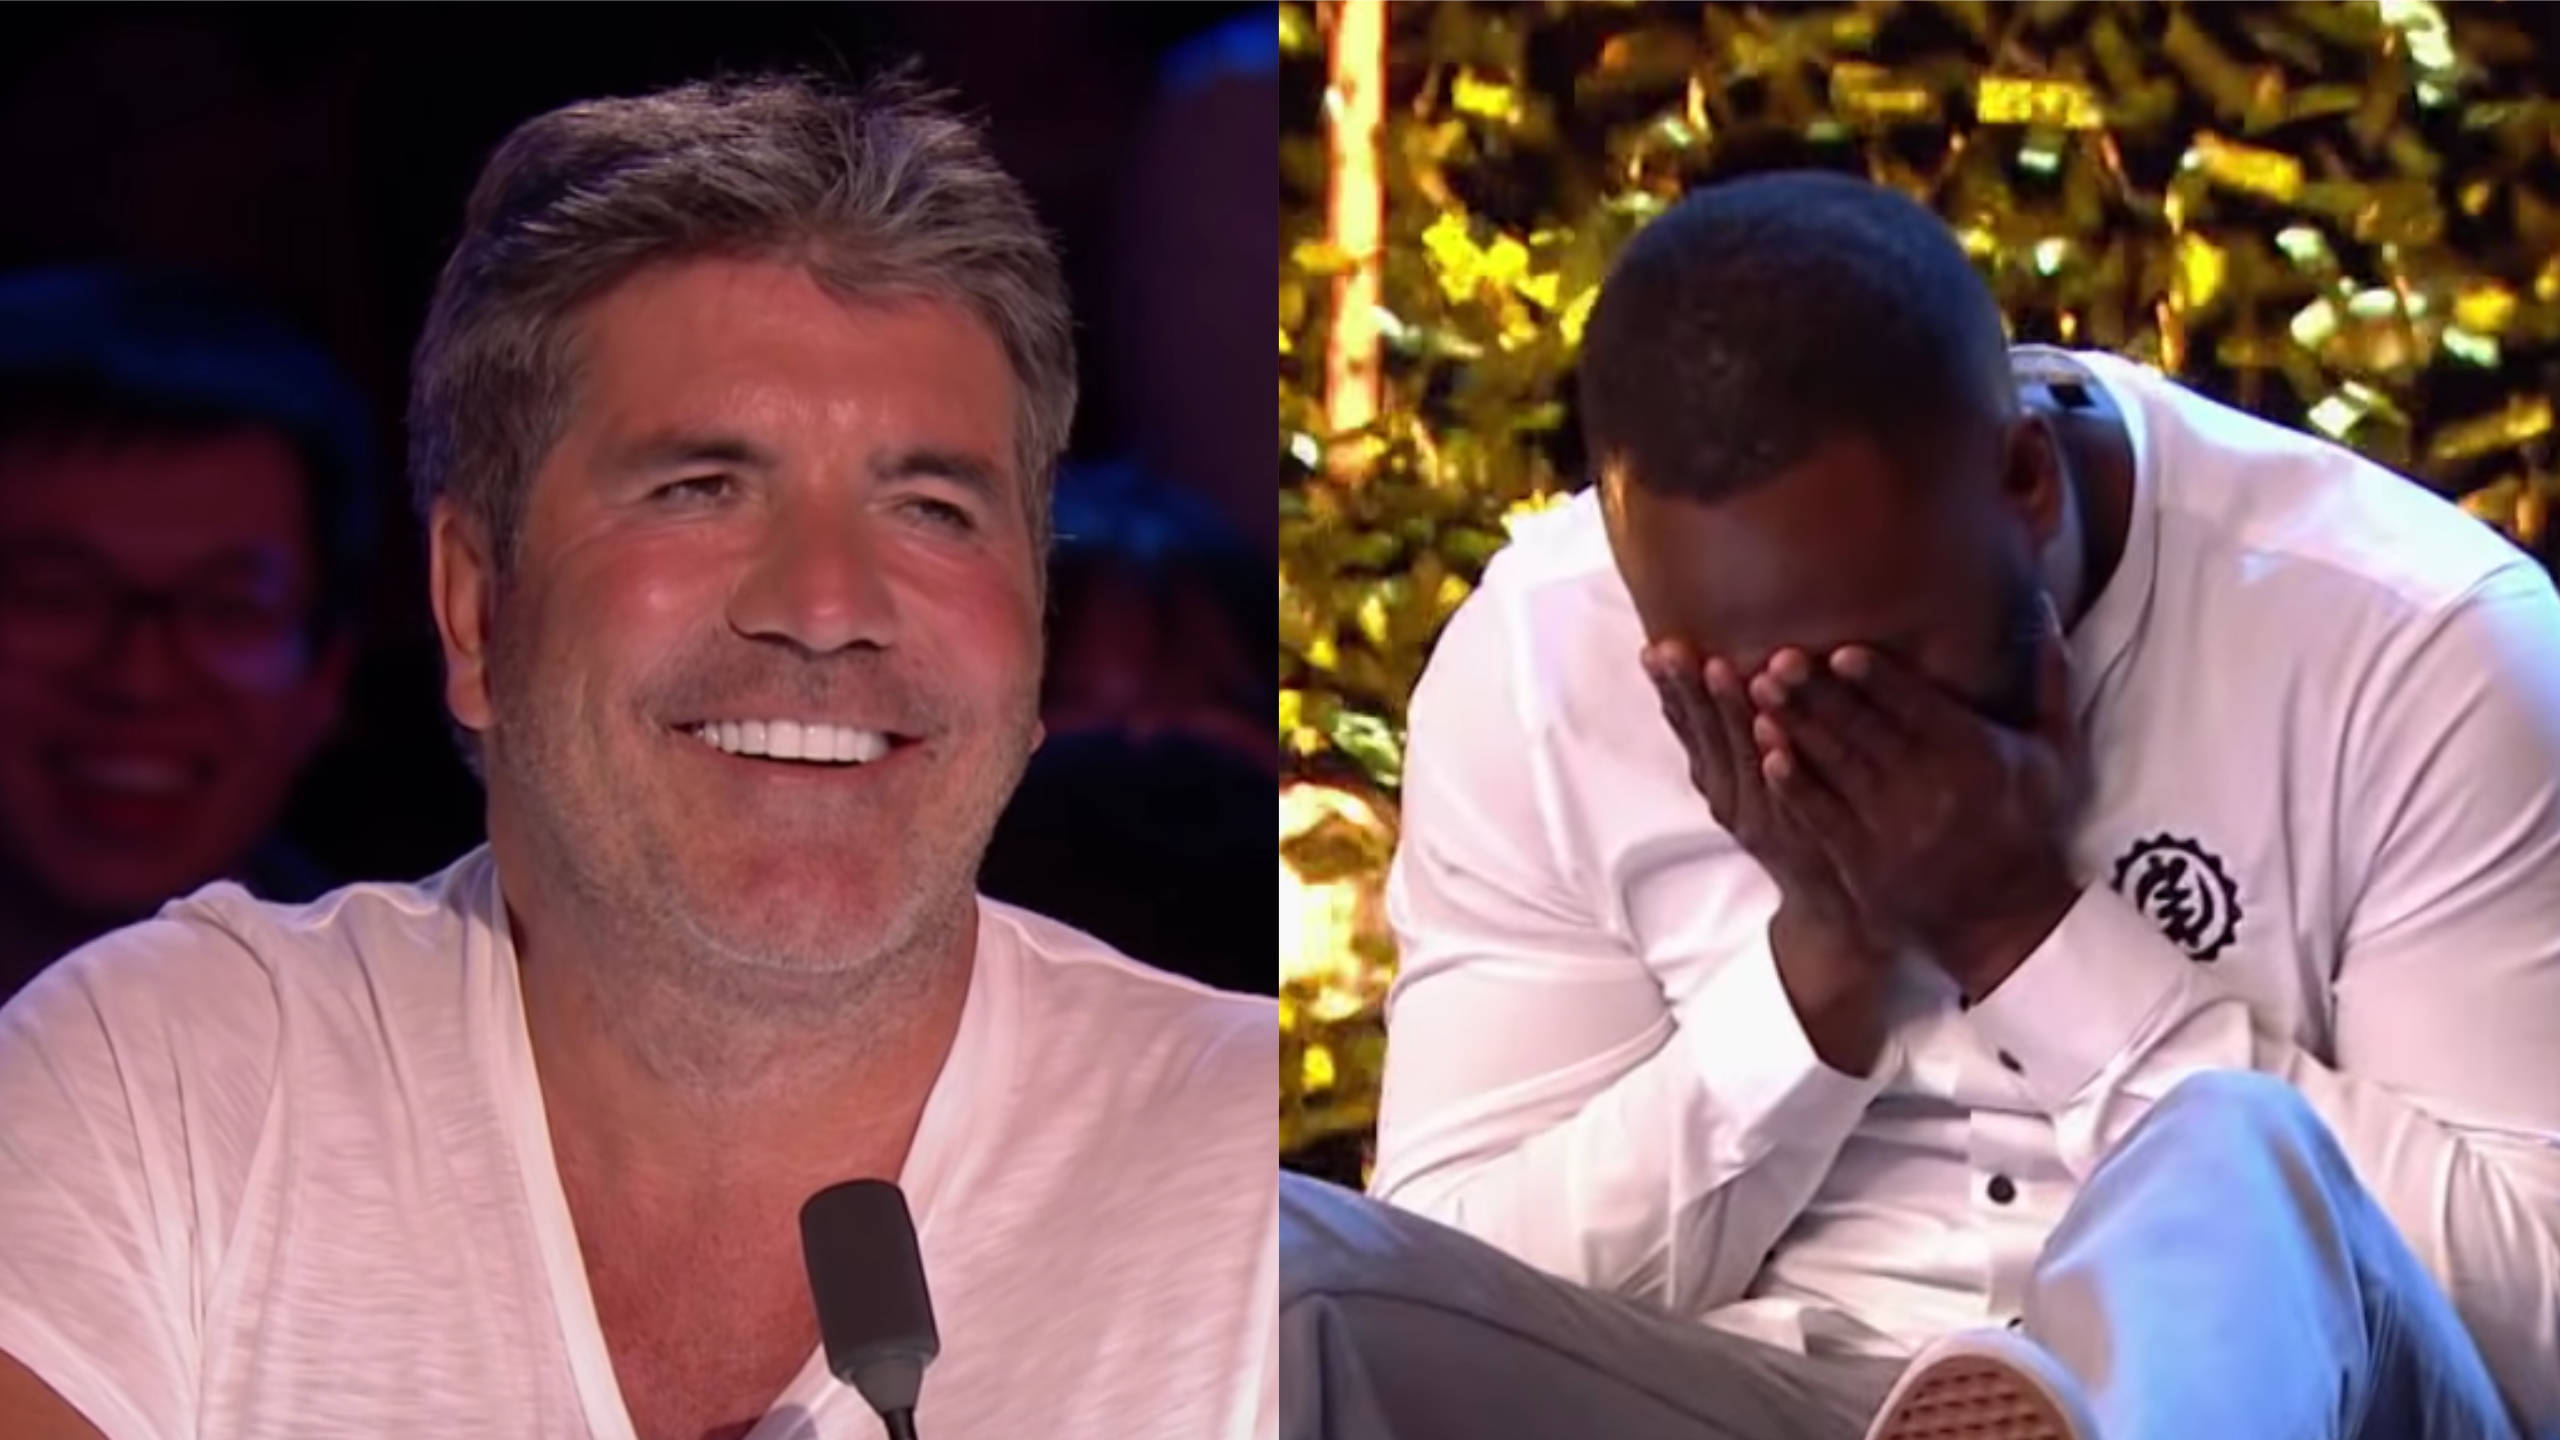 Britain's Got Talent 2019: Ghanaian comedian, Kojo Anim wows Simon Cowell (Video)